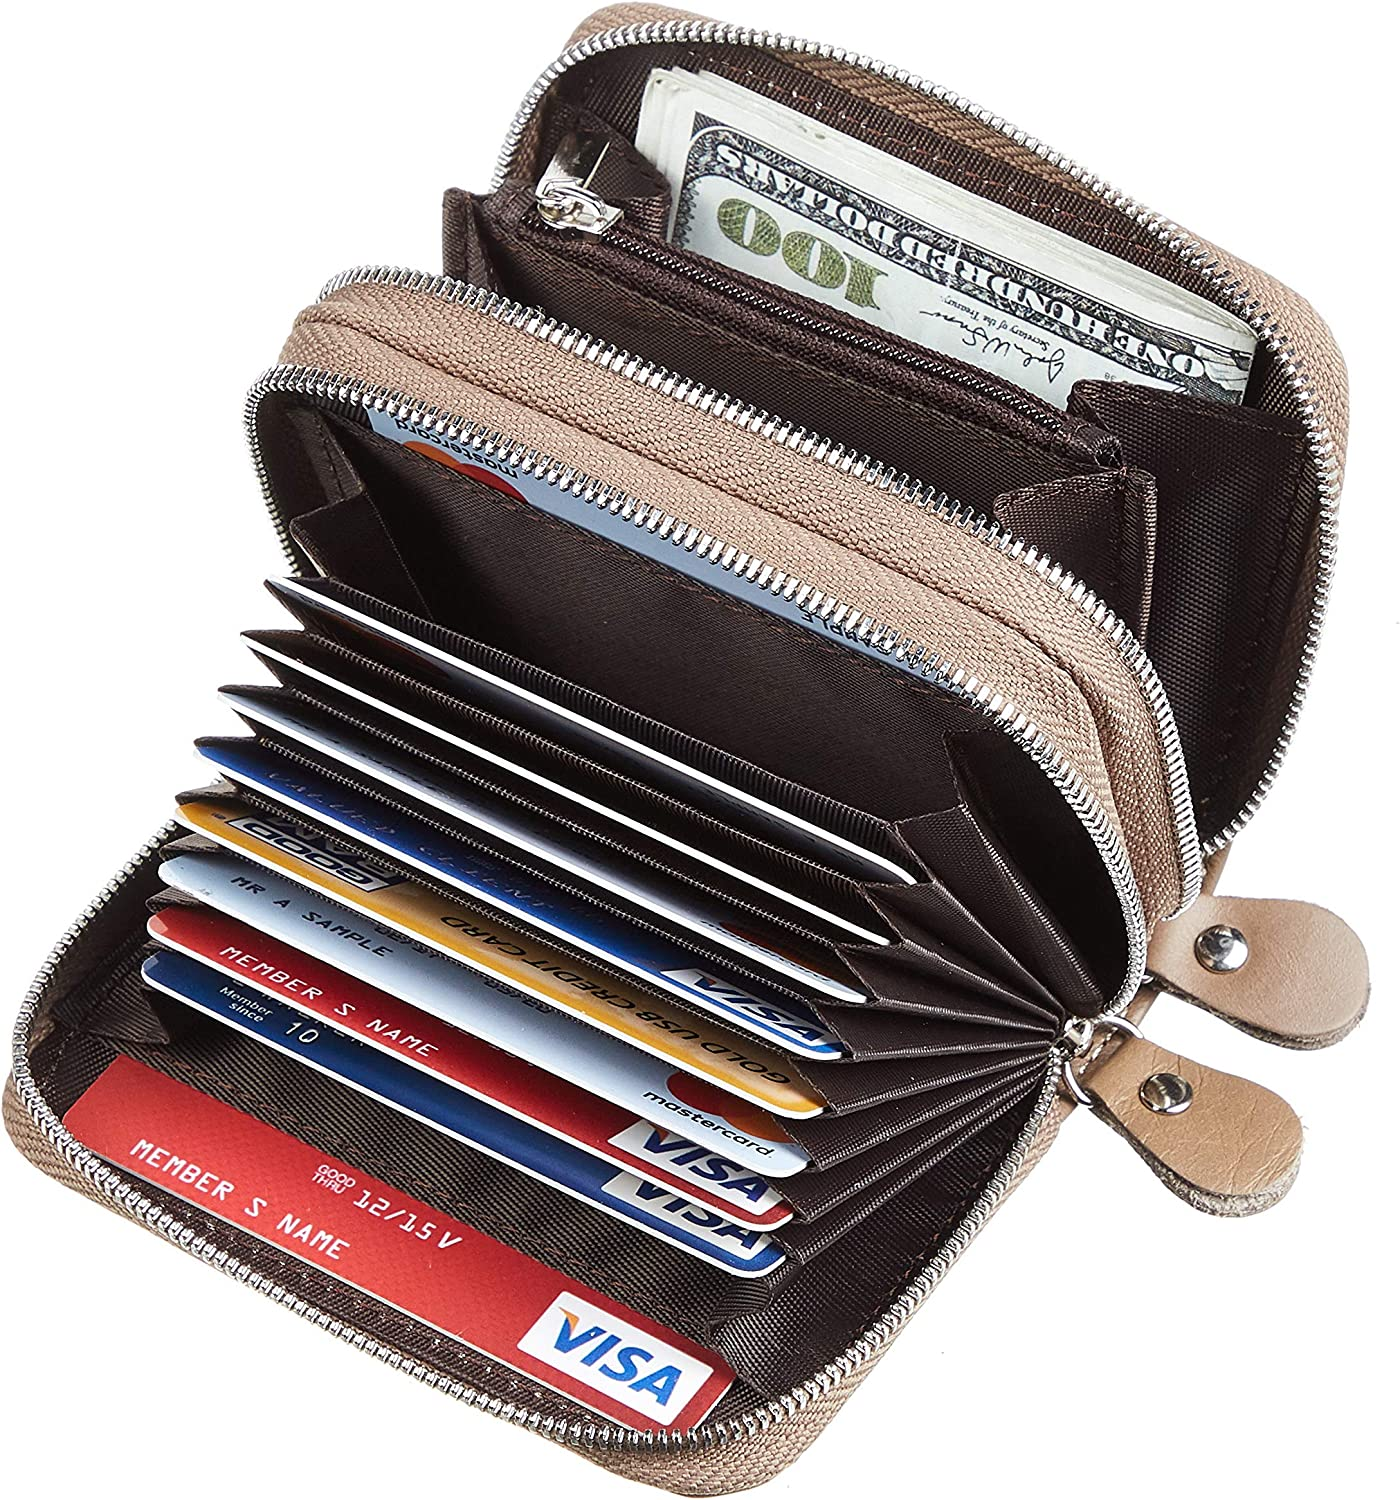 Wek Khaki One Size Gostwo Genuine Leather Credit Card Holder with Zipper Womens Card Case RFID Blocking with Zip Around Wallet